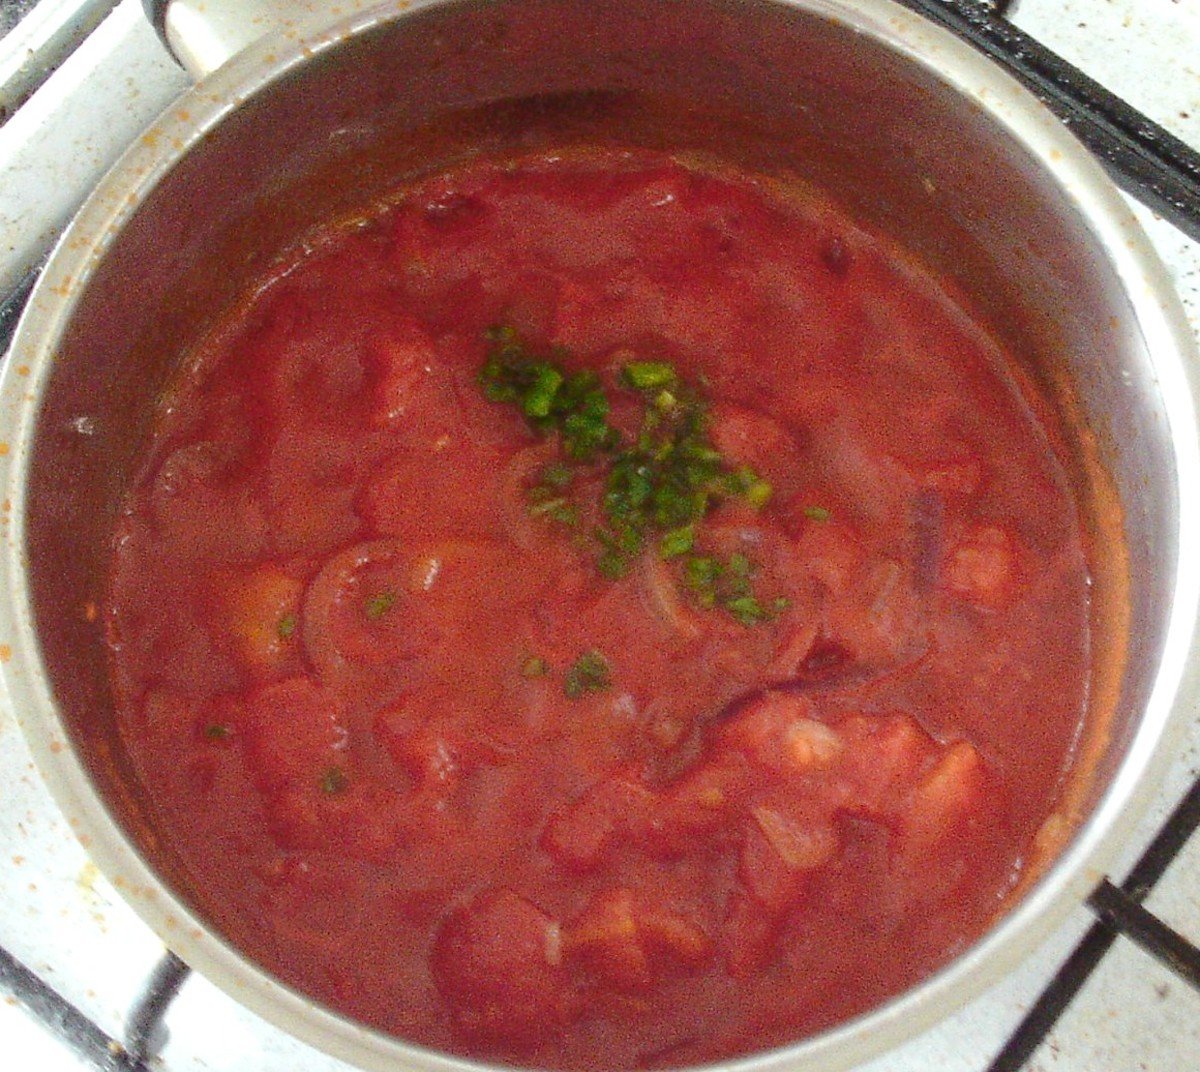 Canned tomatoes and chilli are added to softened onion